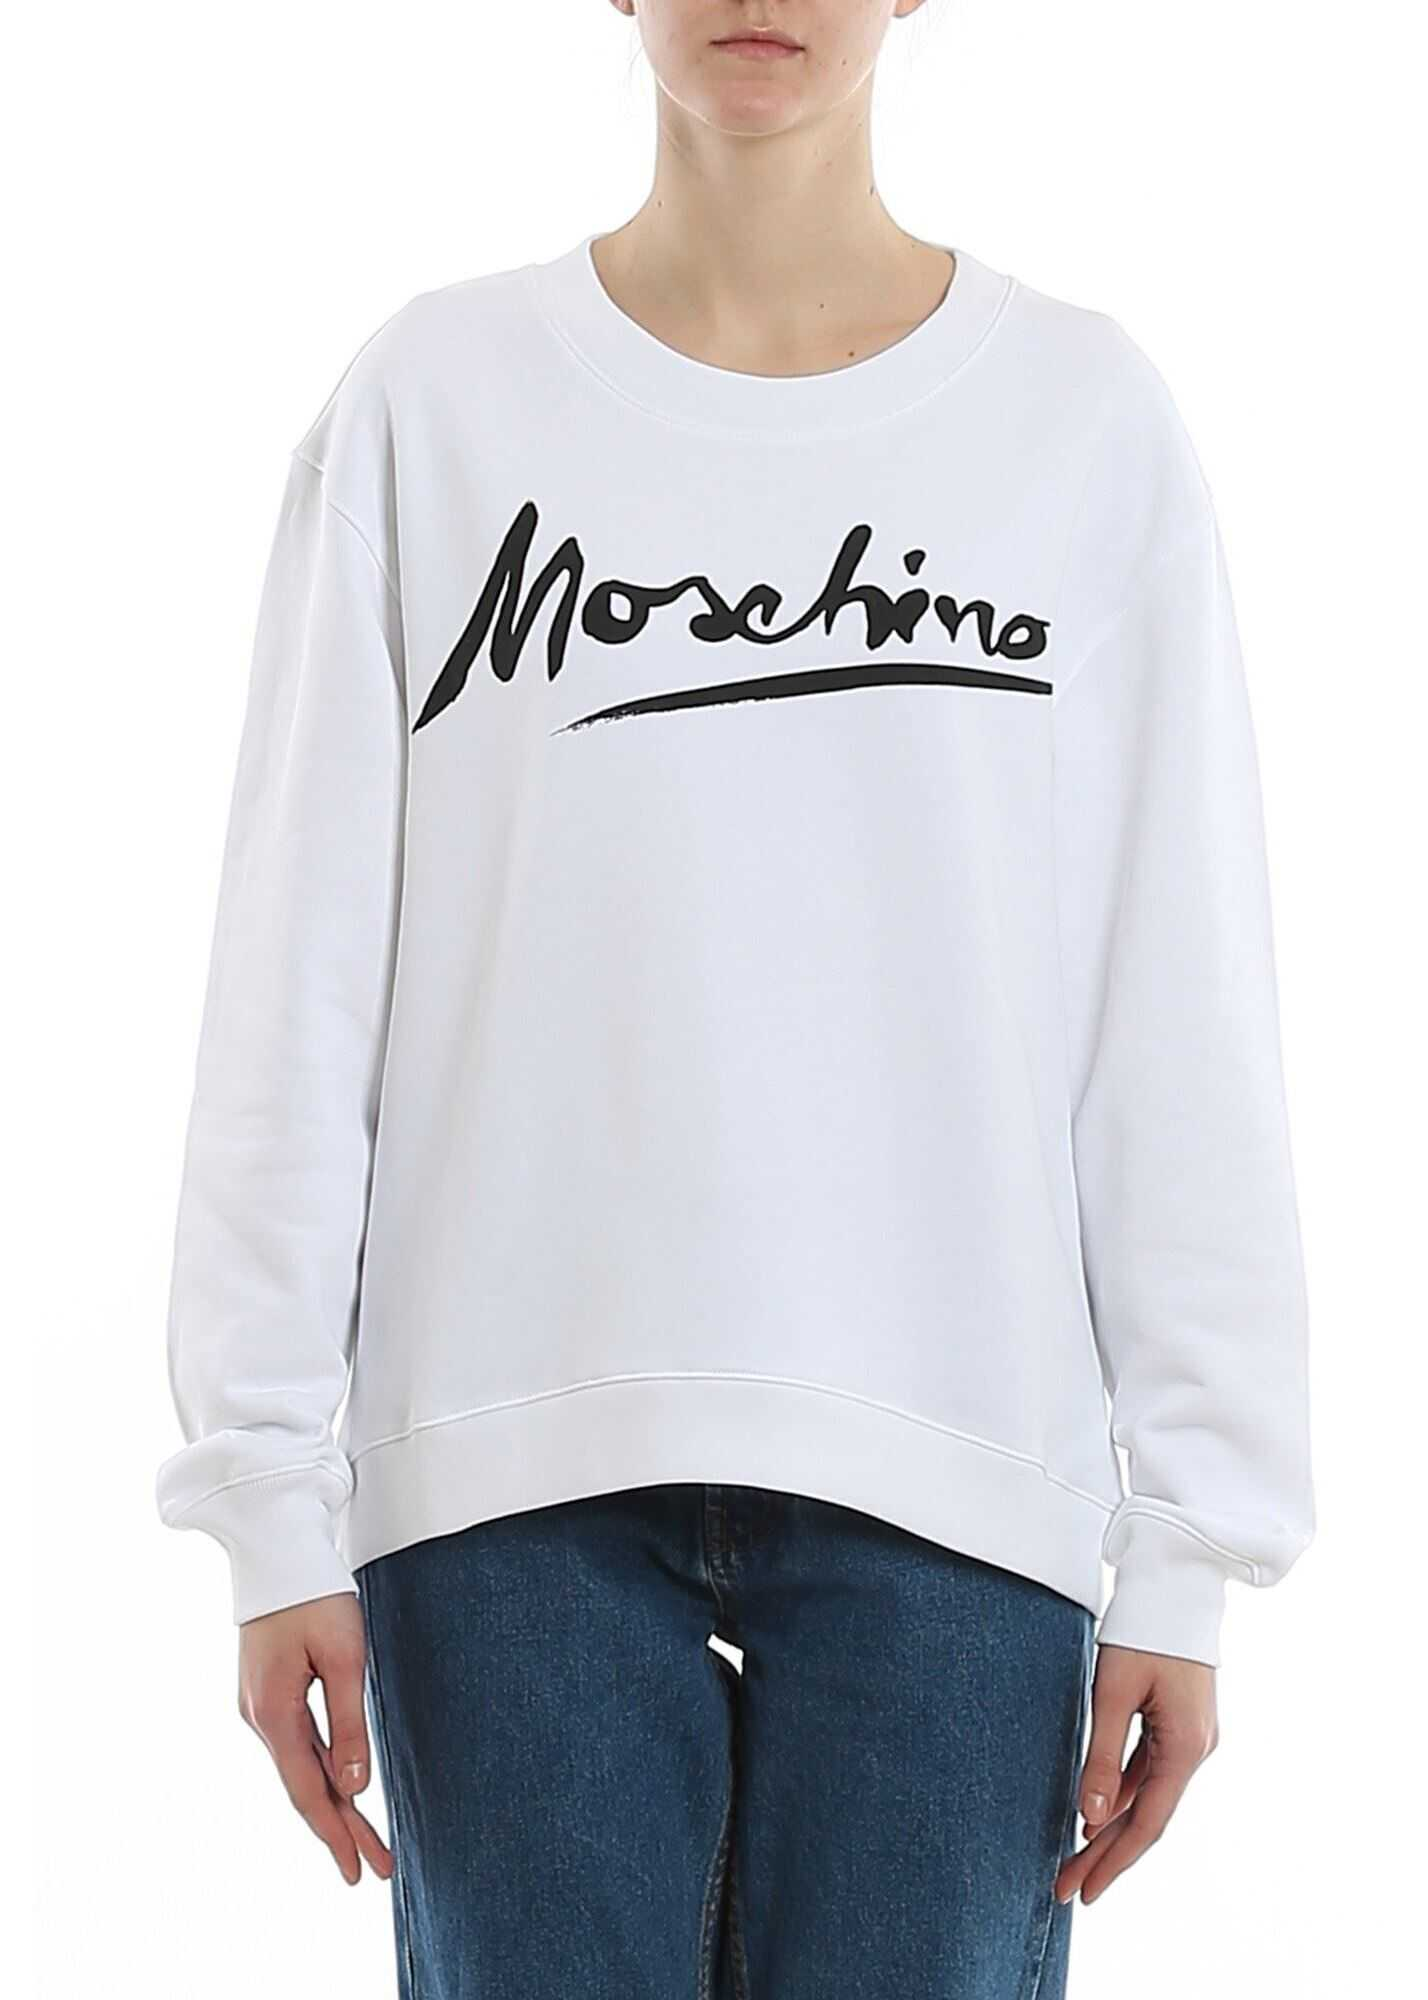 Moschino Logo Print Cotton Sweatshirt In White White